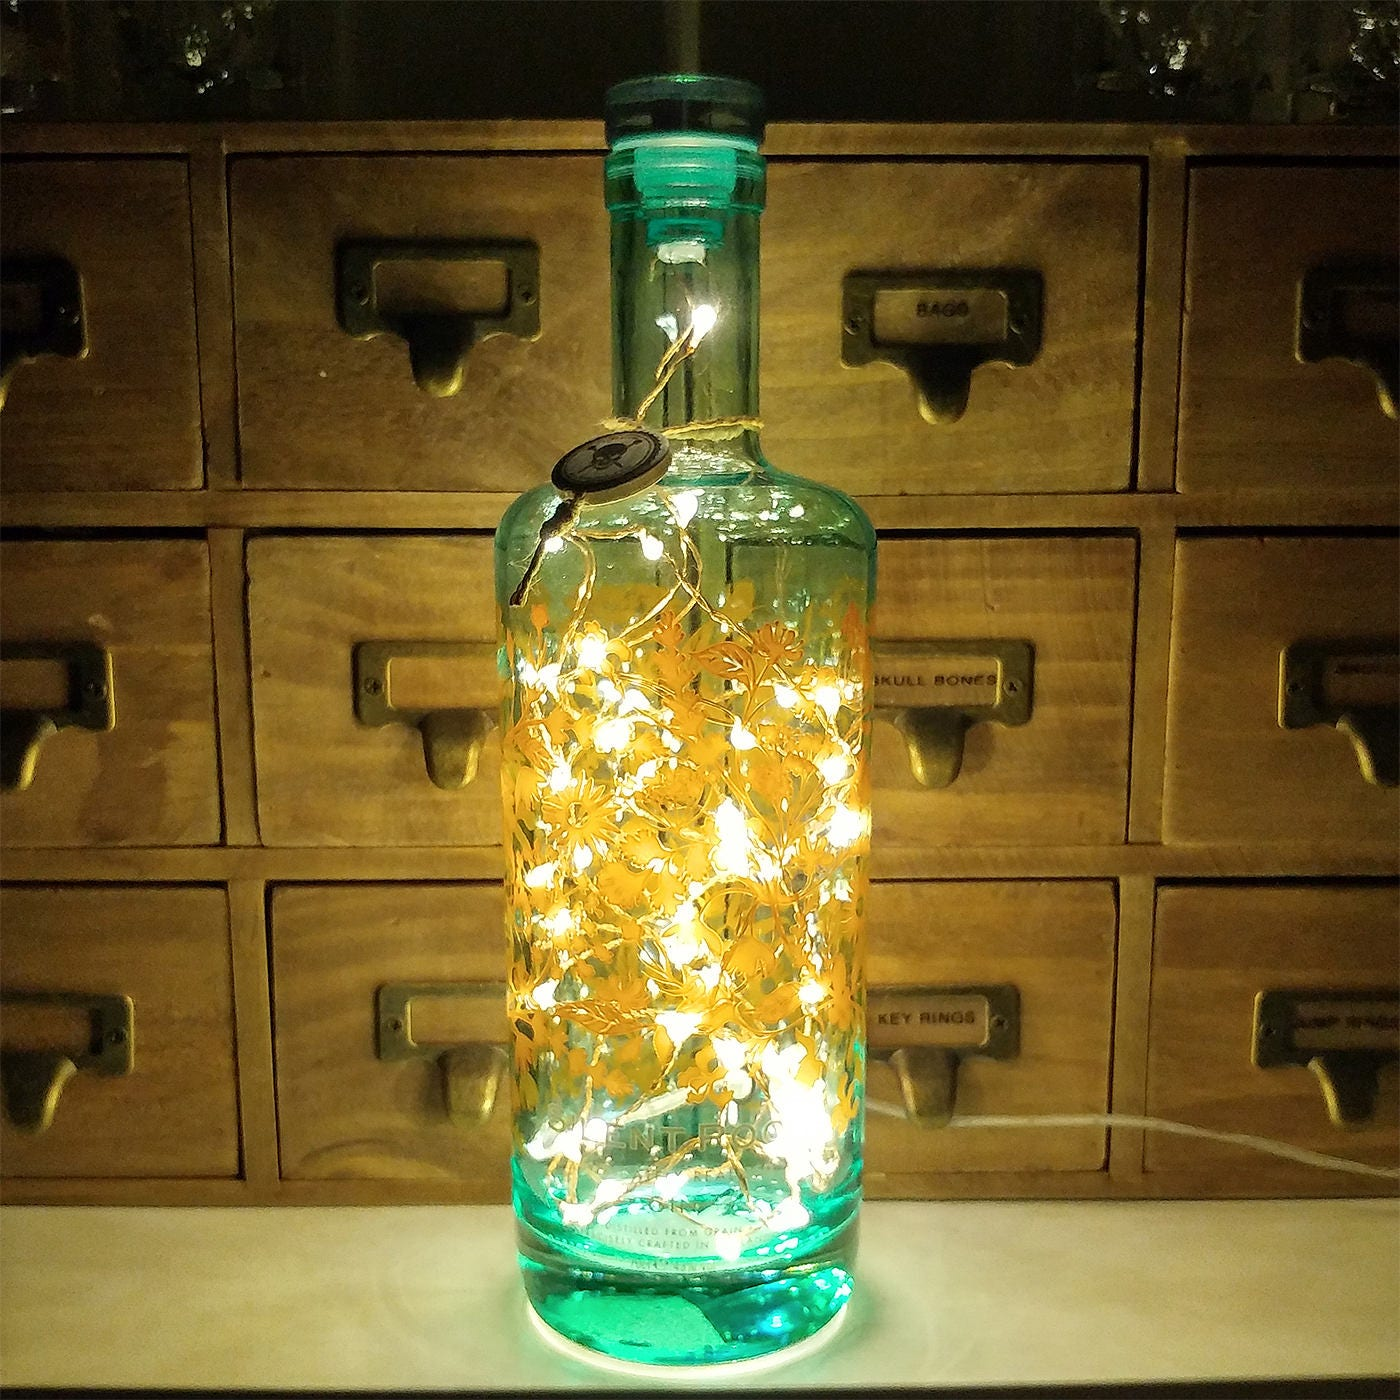 Silent pool gin warm white upcycled led bottle lamp light by - Silent pool gin ...